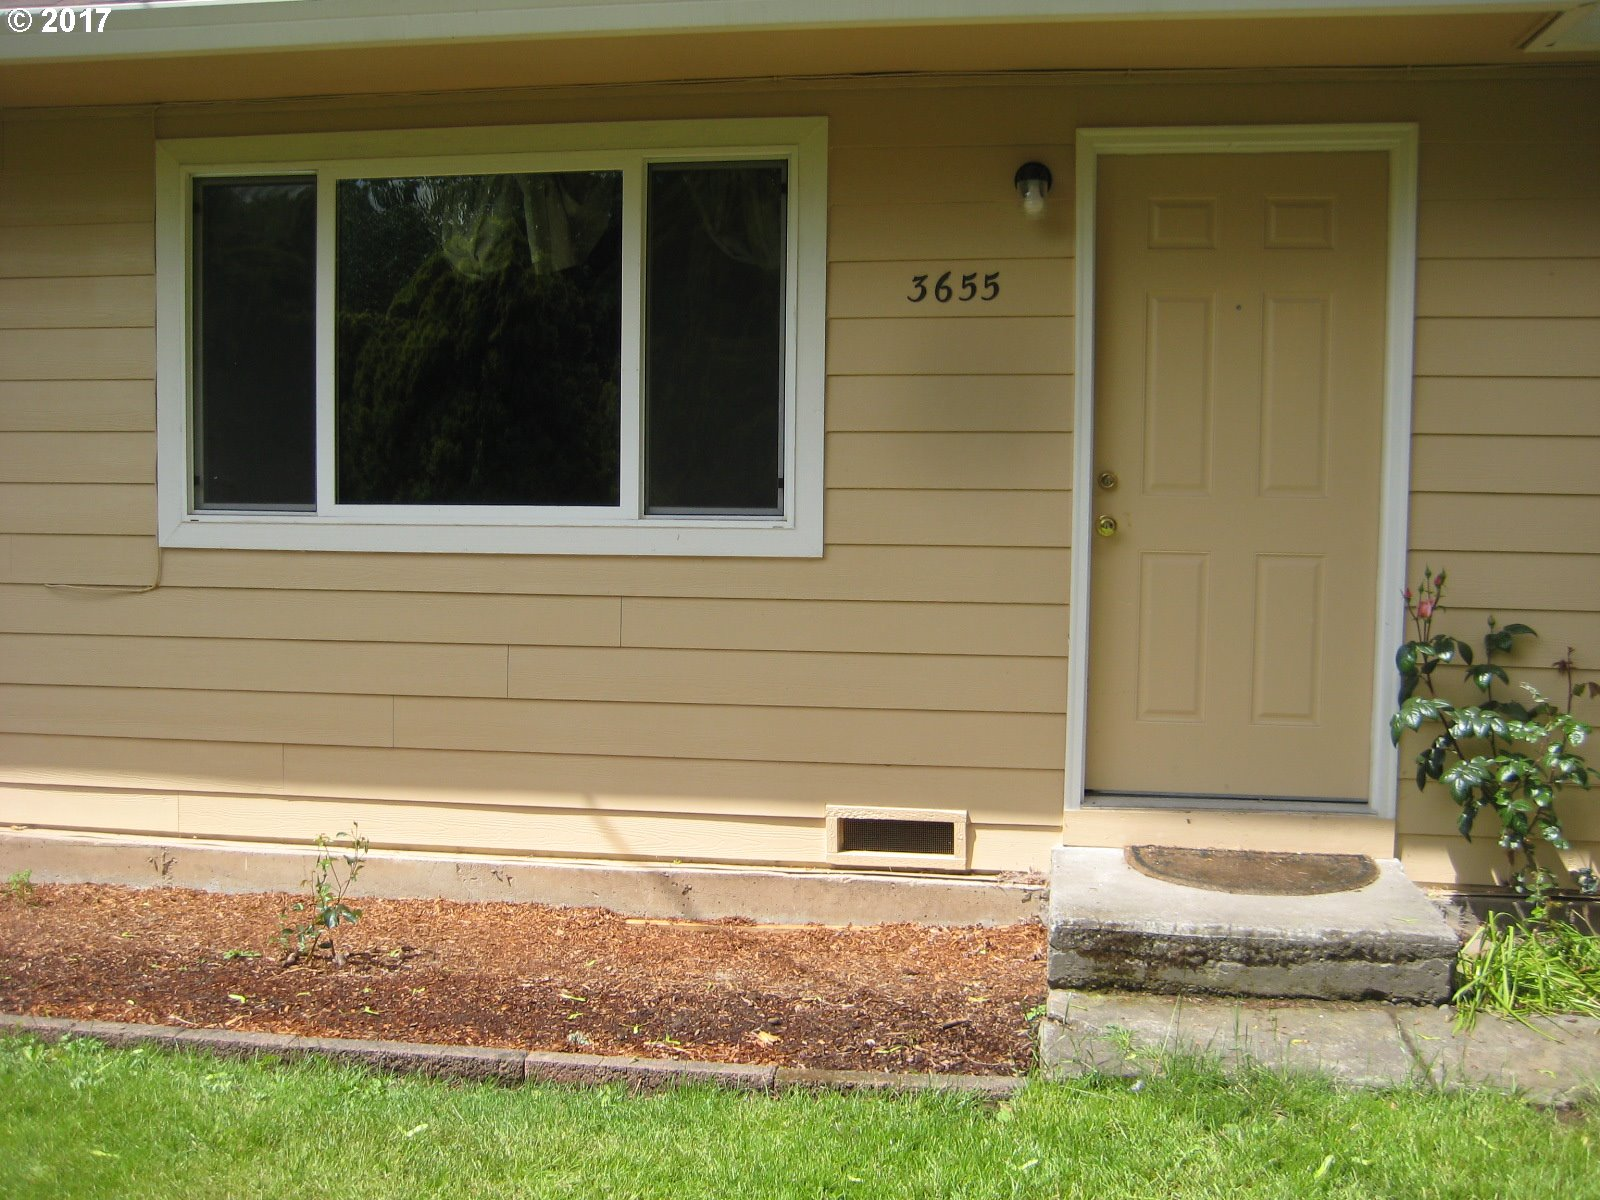 Investor's Dream!  Duplex close to Nike, Tektronics, Comcast, Cedar Hills Crossing, MAX.  Private, single level, two bedroom, one bath units.  Wonderful long term tenants.  Fenced back yards, driveways, electric heat.  Reinforced foundation.  Upside for rents.